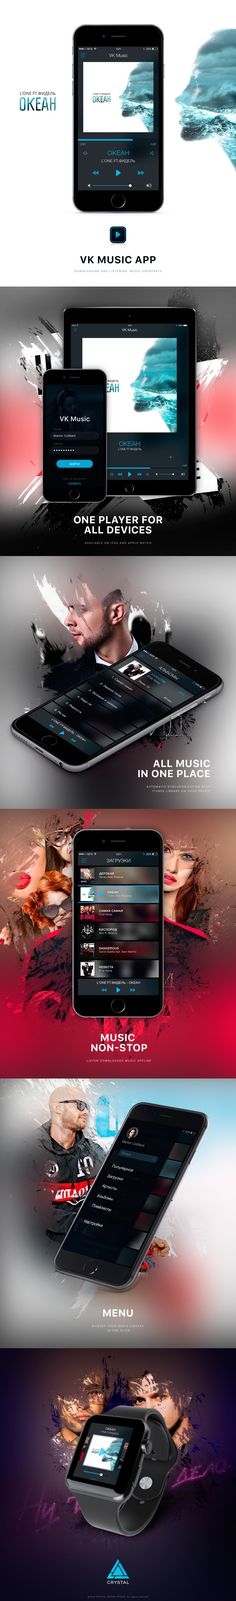 VK Music App on Behance